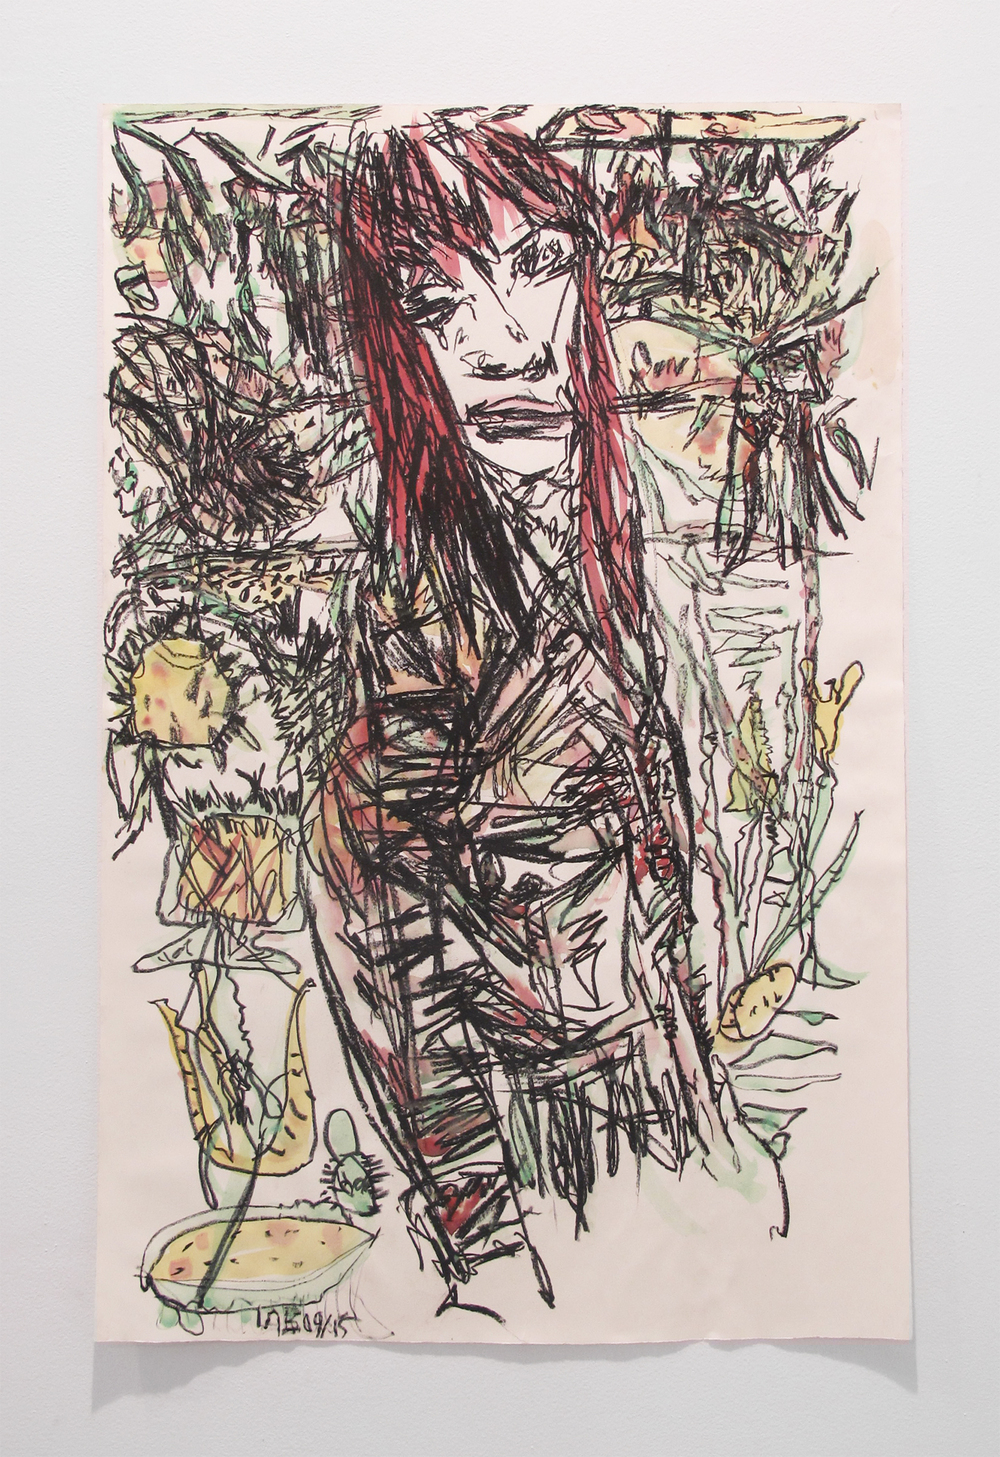 Aidas Bareikis,  Solo 003 , 2009-15, paper, oil pastel, watercolor, 40 x 26 in